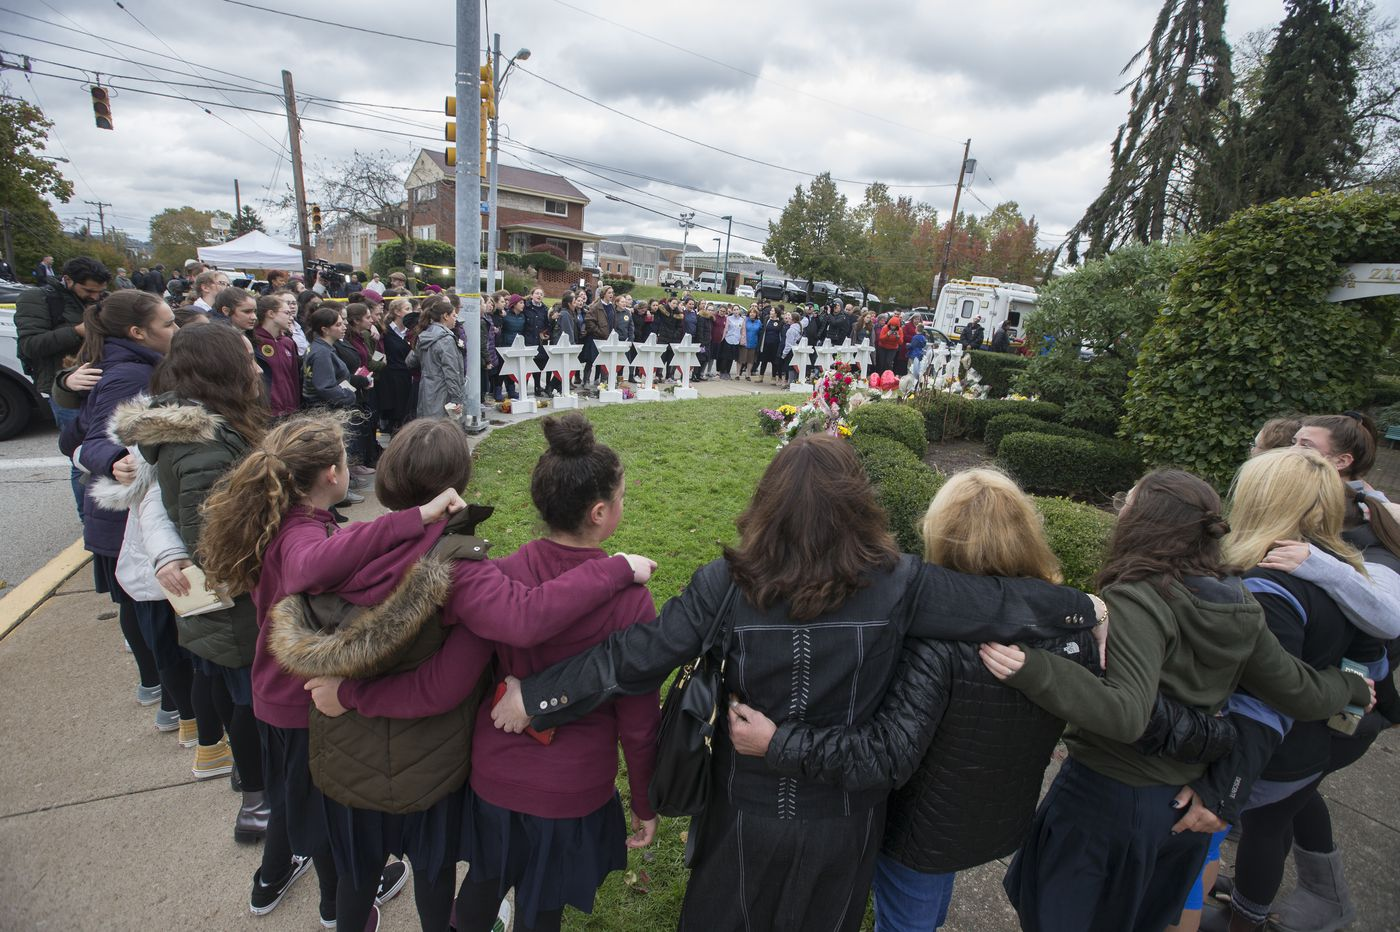 Pittsburgh pushes strict gun laws after the synagogue massacre. Some people still don't want them.